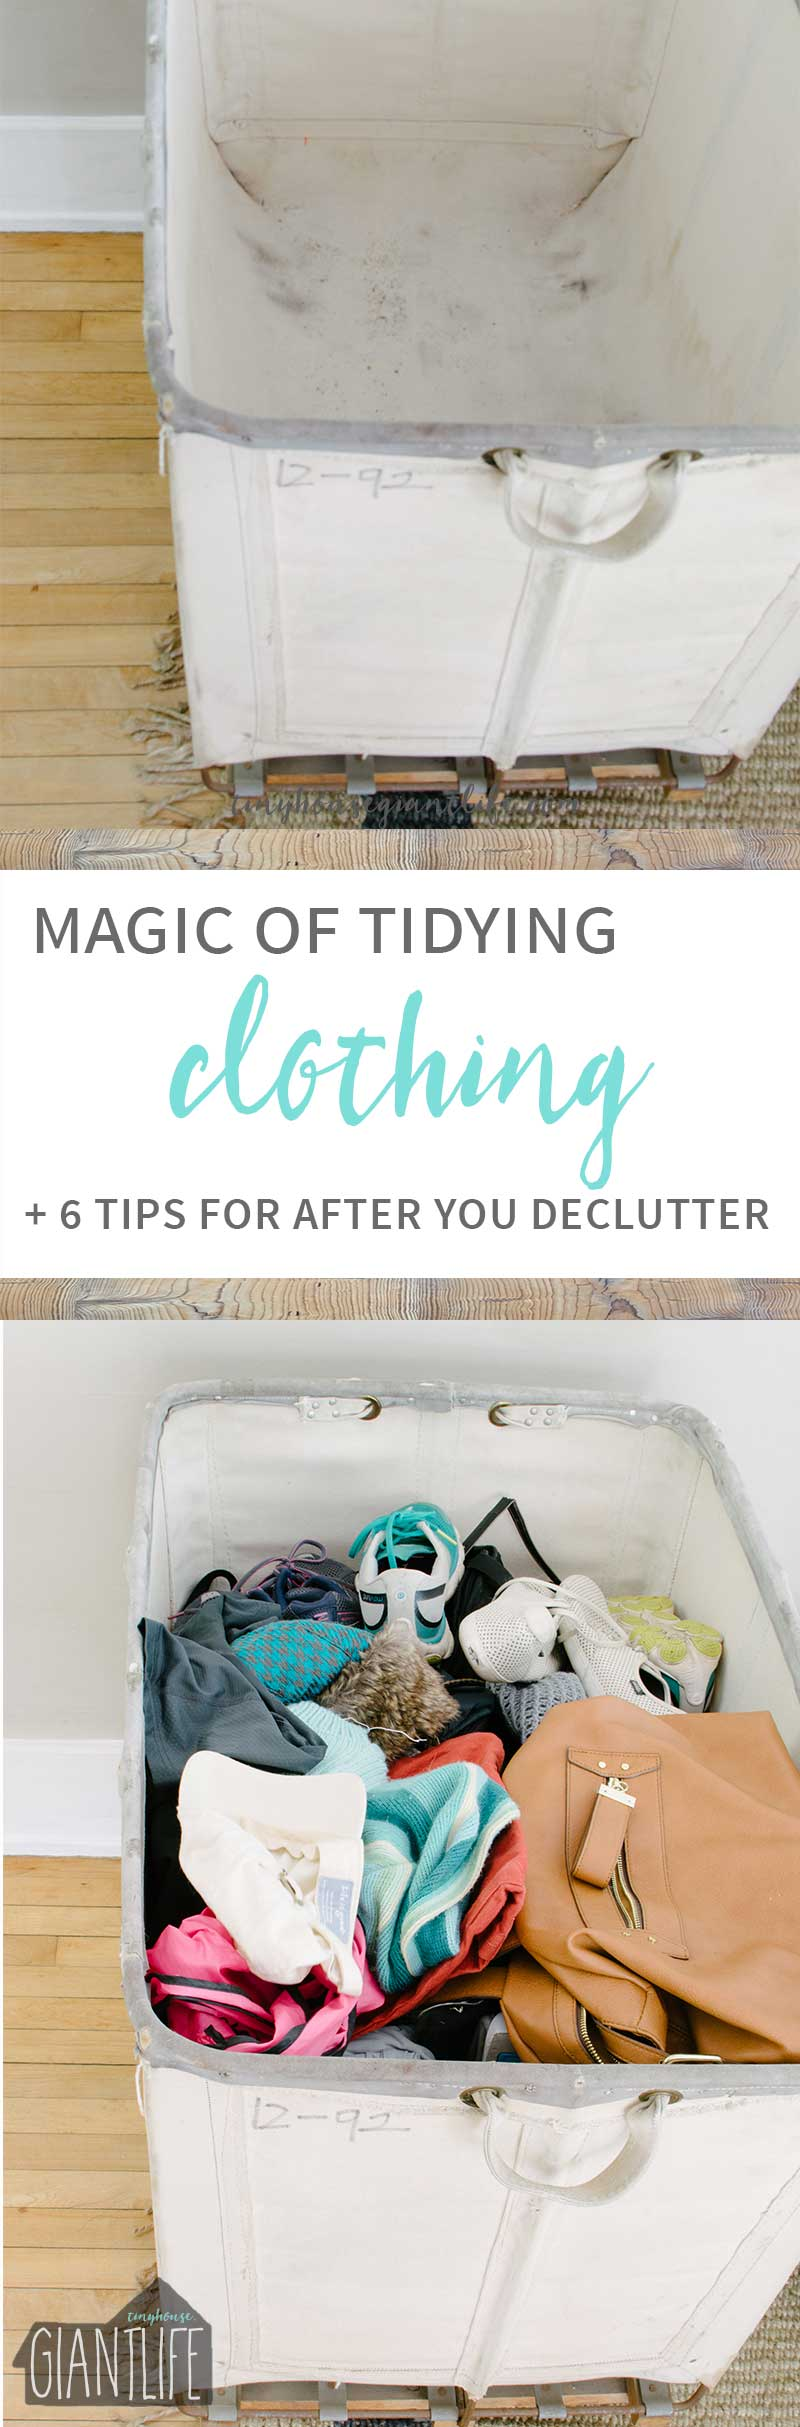 How to declutter clothing using the magic of tidying process |Organization | Clothing Organization